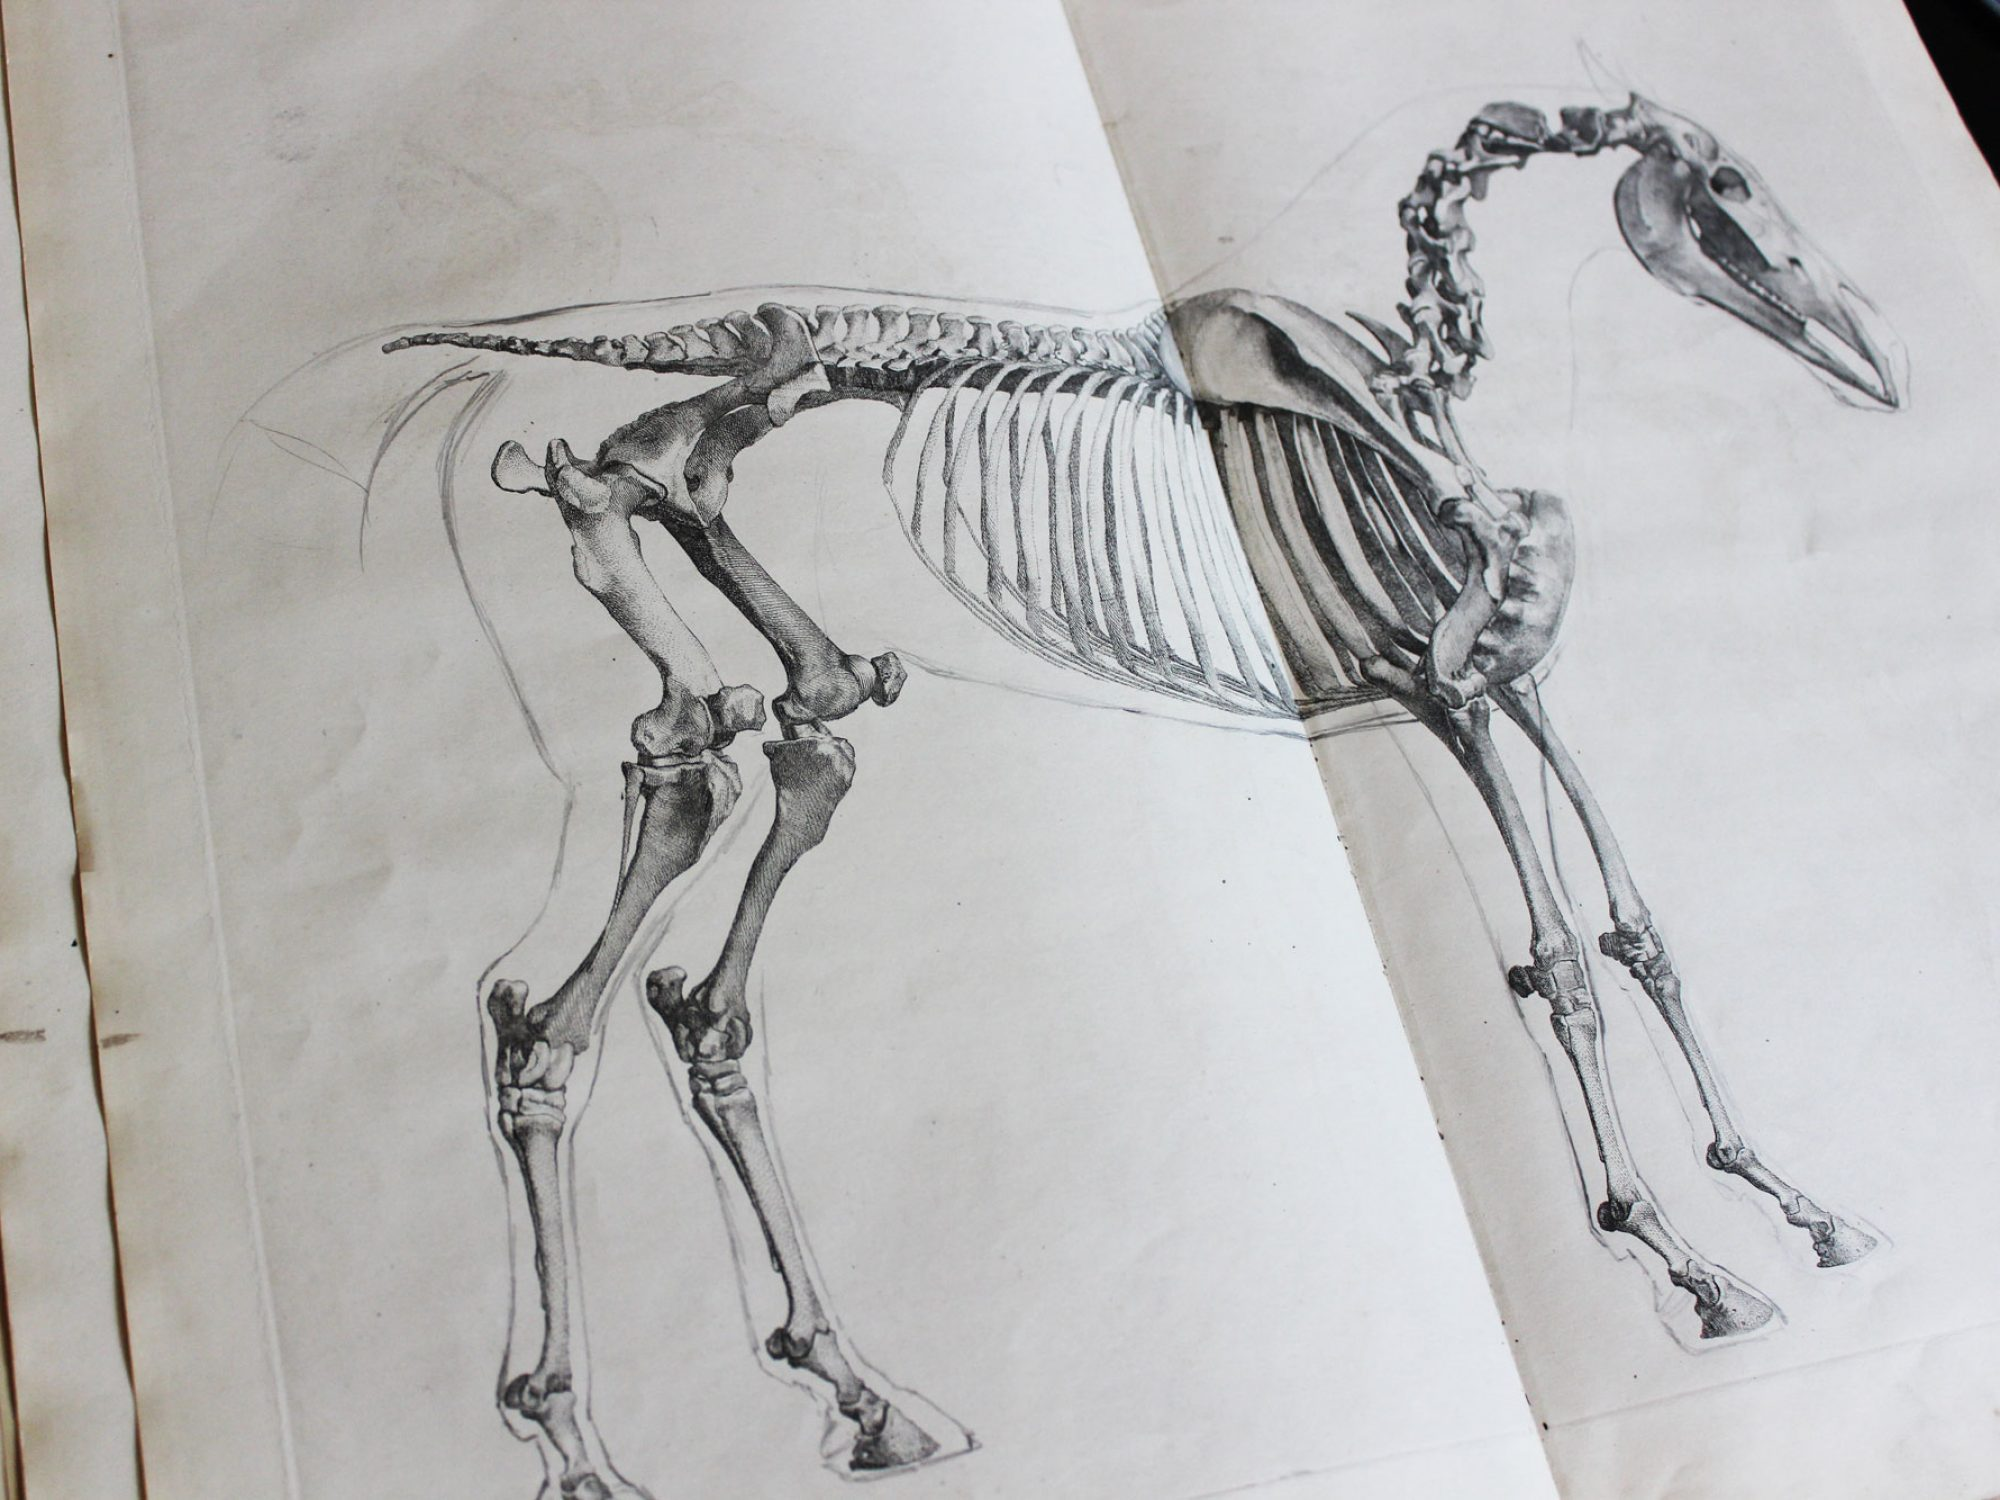 An illustration across two pages of the skeleton of a horse.